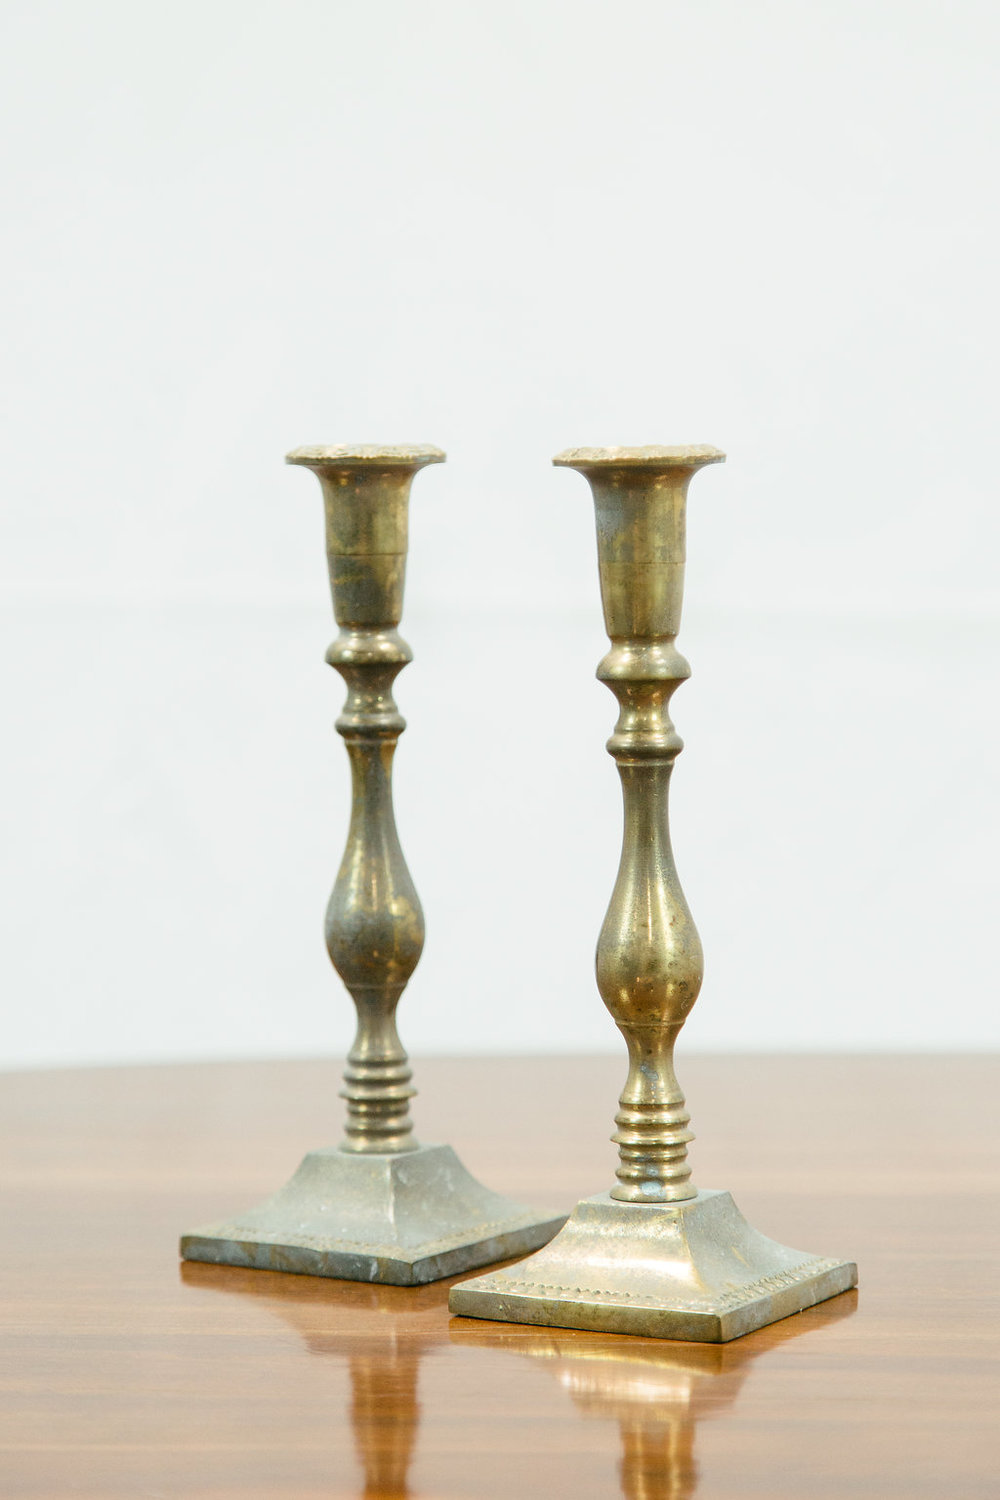 Briar Brass Candlesticks, Set of Two 2 - Provenance Vintage Rentals Los Angeles Vintage Brass Candlestick Holders Gold Candlesticks Vintage Candle Rentals Vintage Wedding Decor Prop Rentals Specialty Rentals Los Angeles.jpg